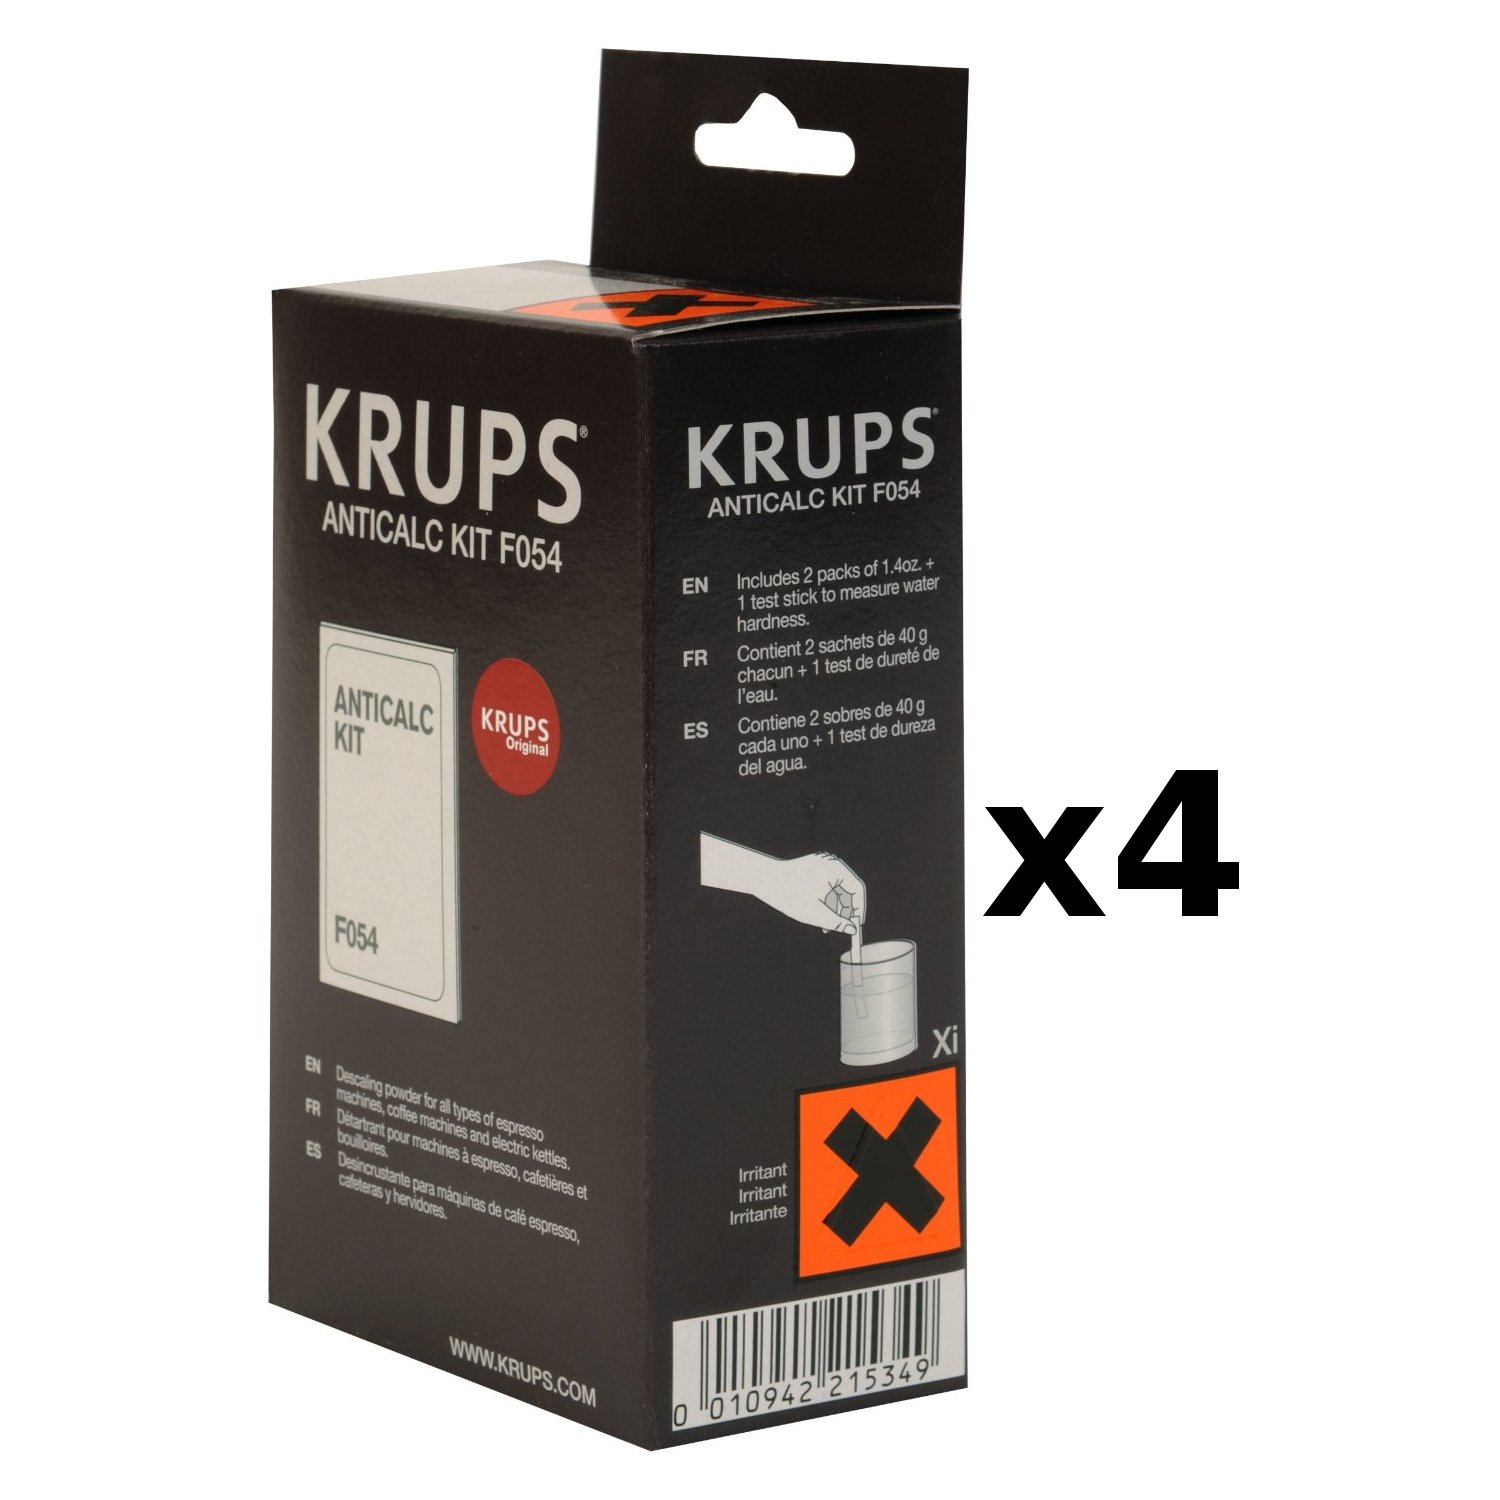 Krups Descaling Powder With Hard Water Test Kit, Set of 4 (Includes 8 packets) by KRUPS